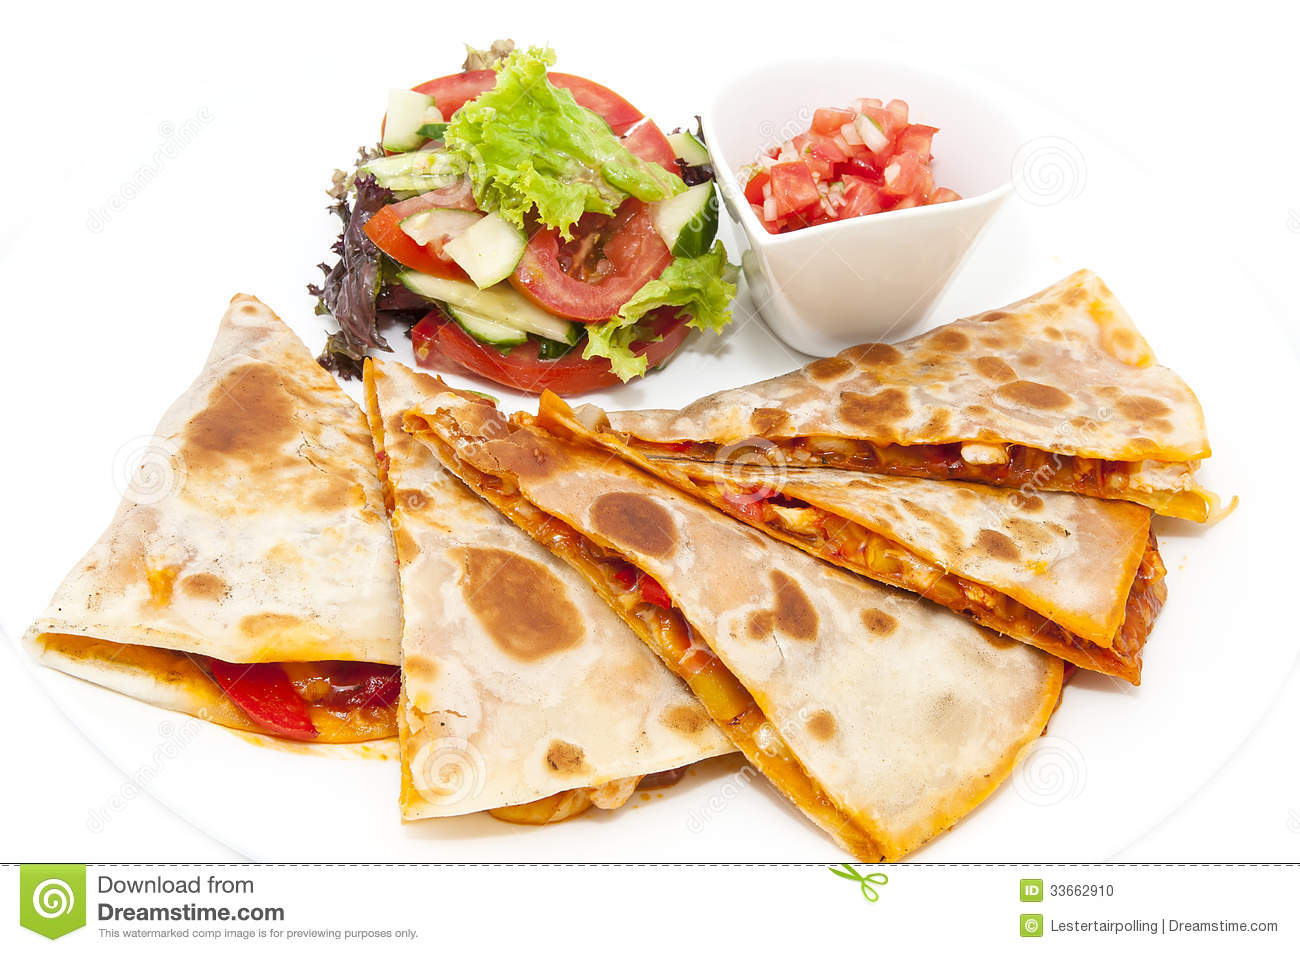 Mexican food dishes at the restaurant on a white background.